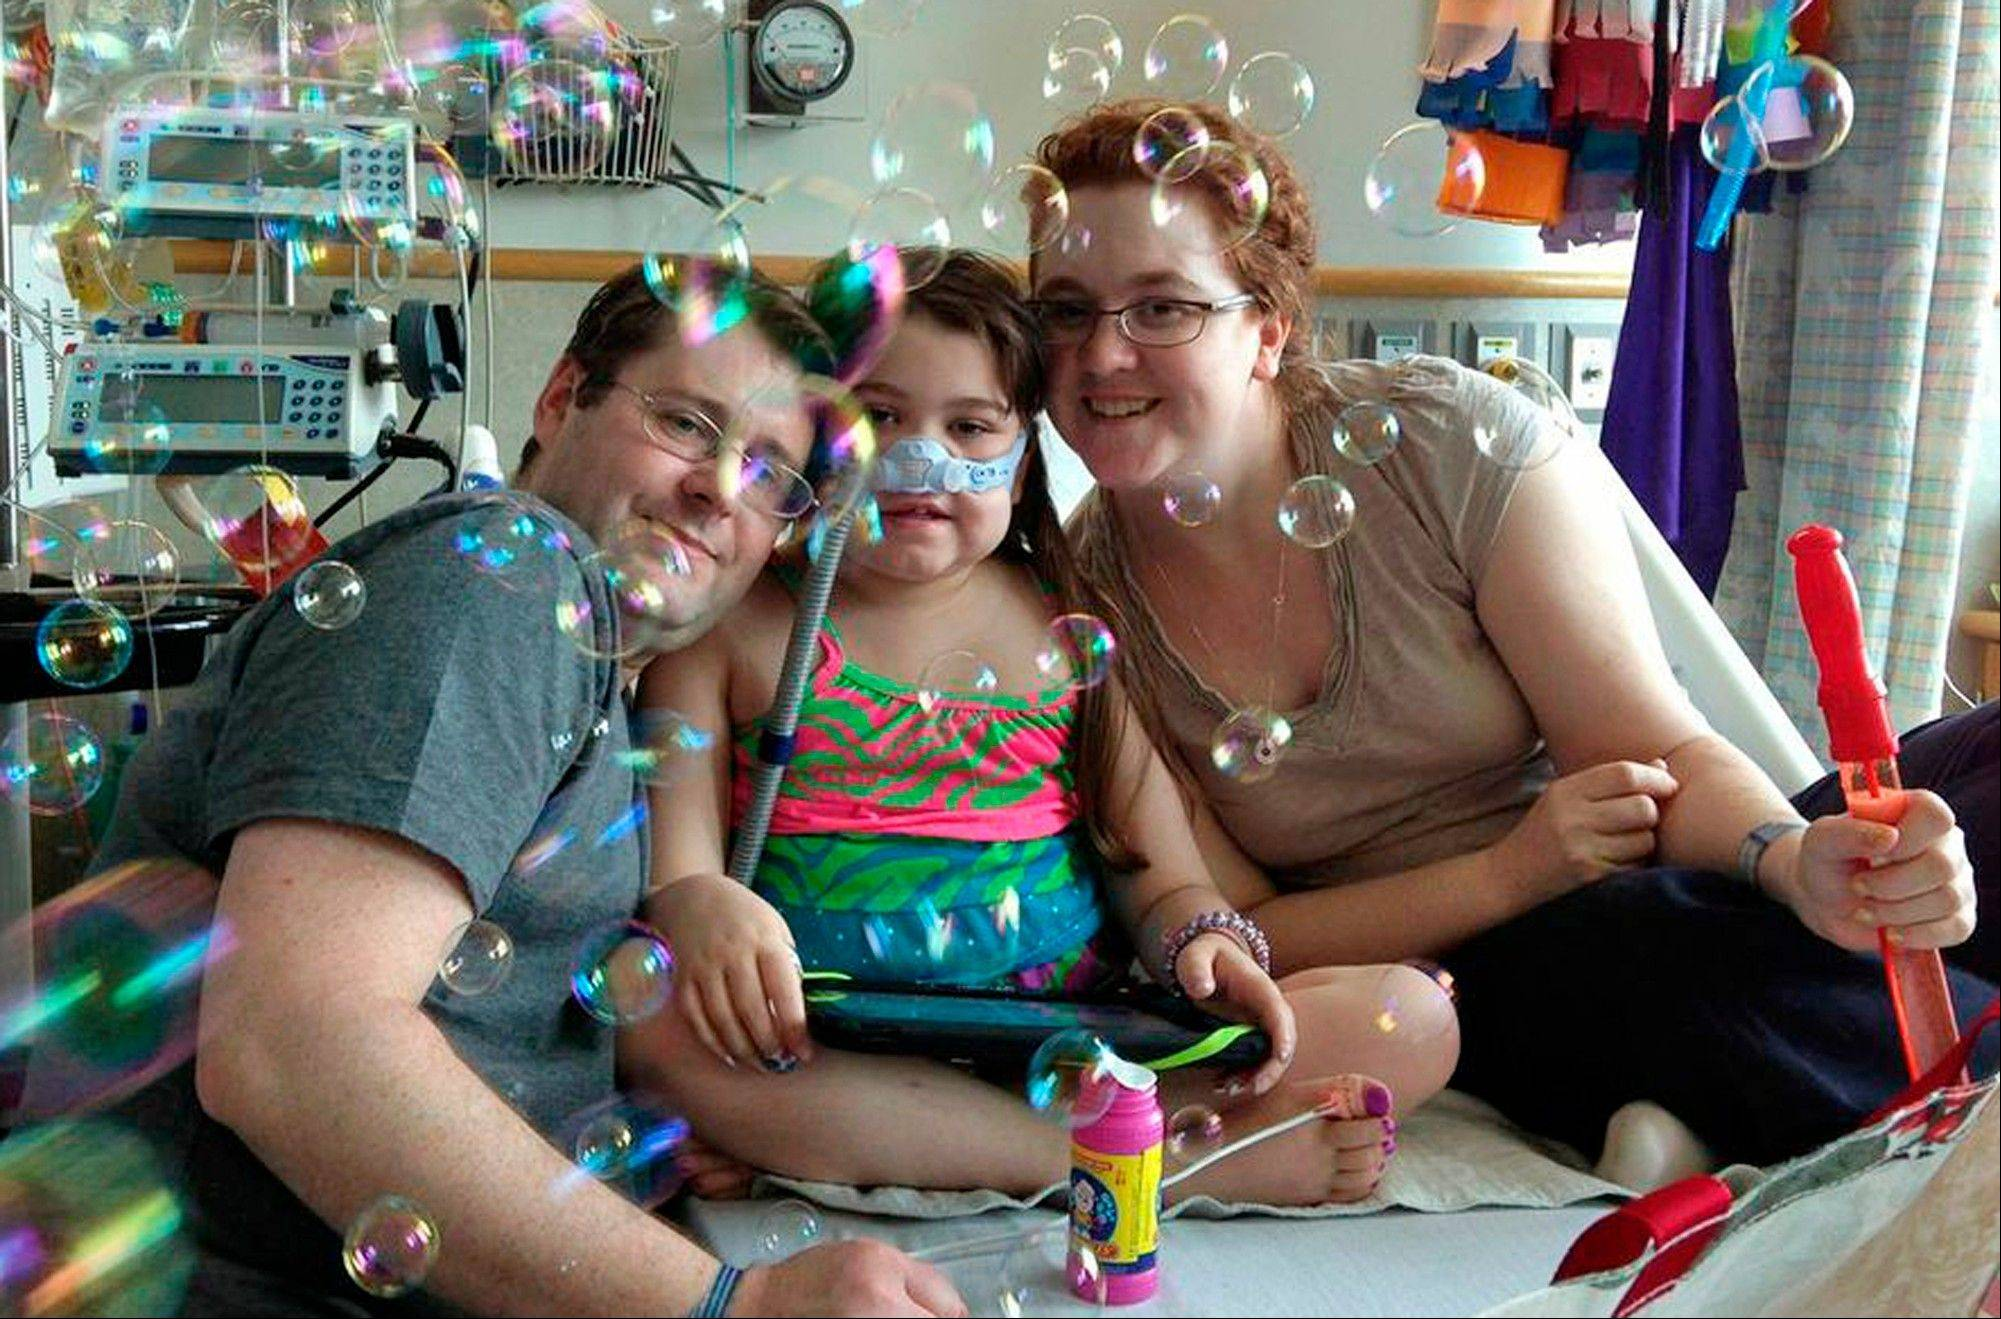 Sarah Murnaghan, center, celebrates the 100th day of her stay in Children's Hospital of Philadelphia with her father, Fran, left, and mother, Janet. The national organization that manages organ transplants on Monday June 10, 2013 resisted making emergency rule changes for children under 12 who are waiting on lungs but created a special appeal and review system to hear such cases.